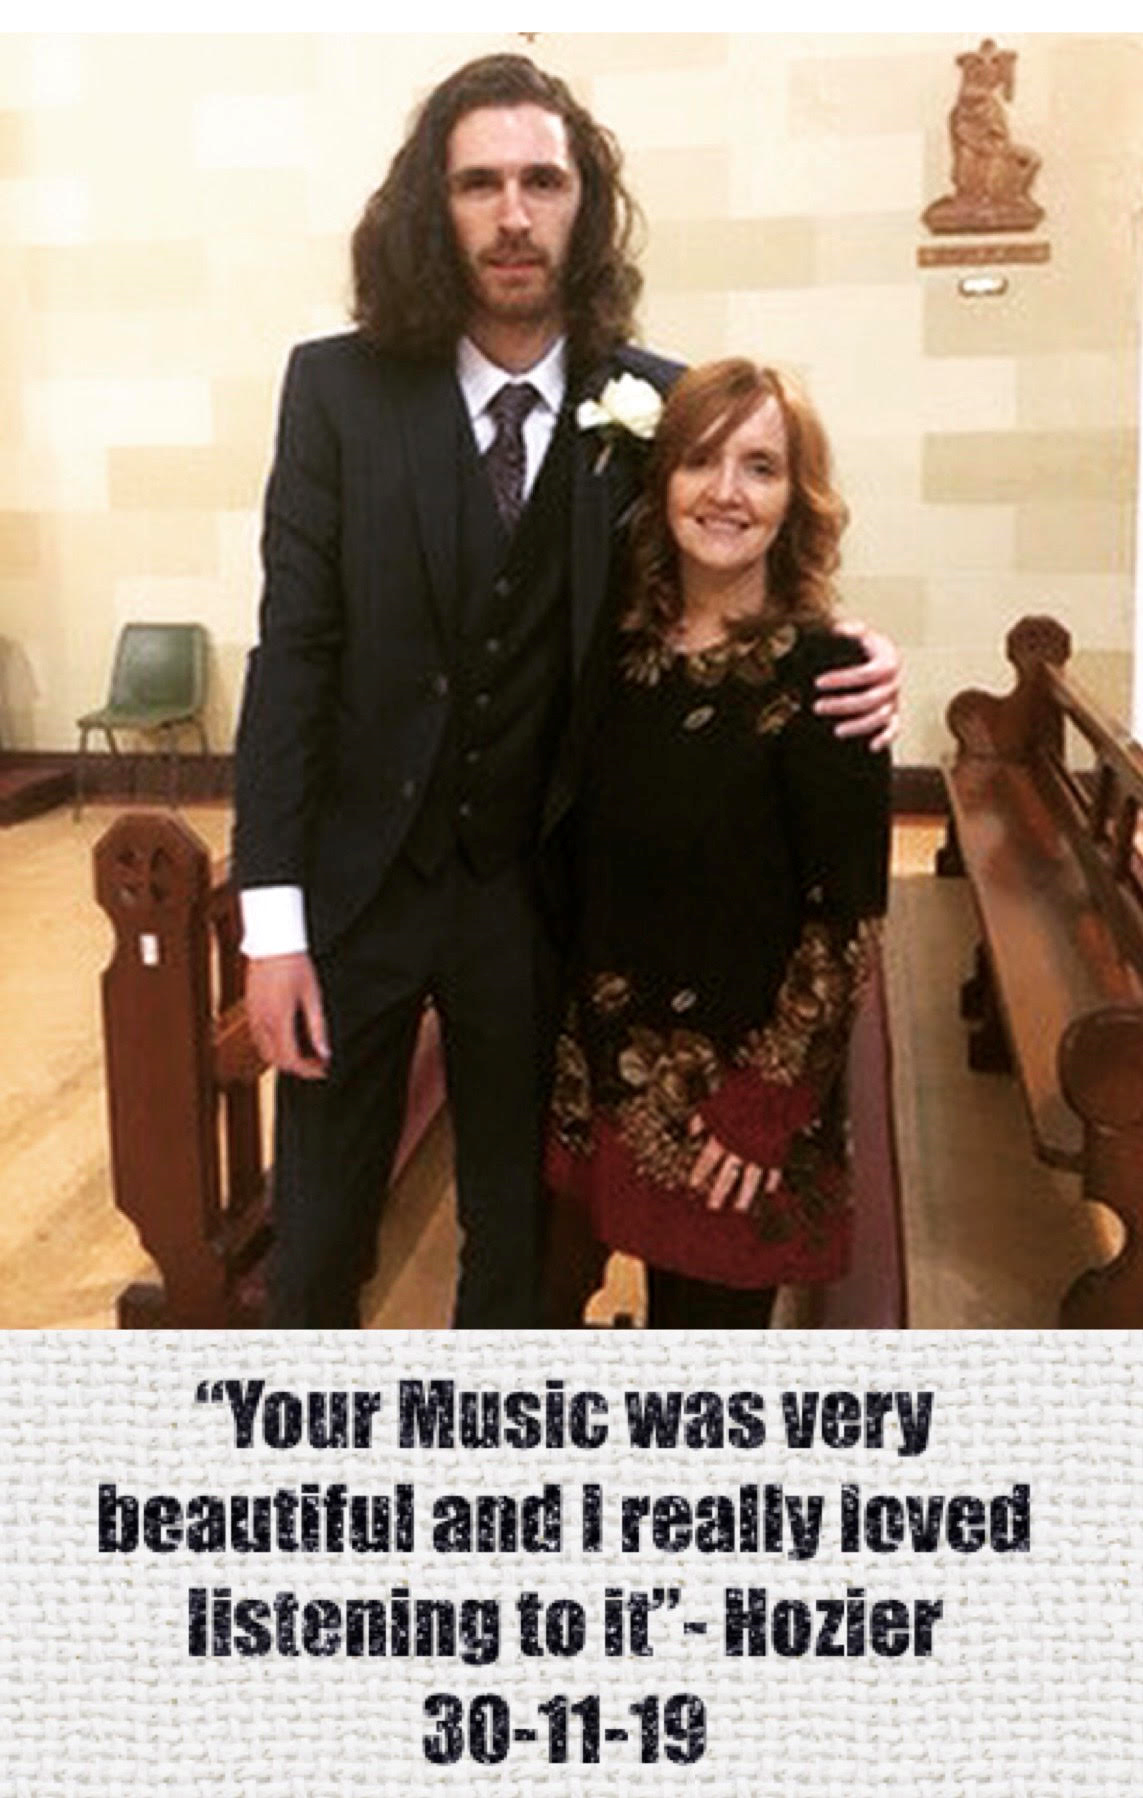 Hozier with Brenda Grealis